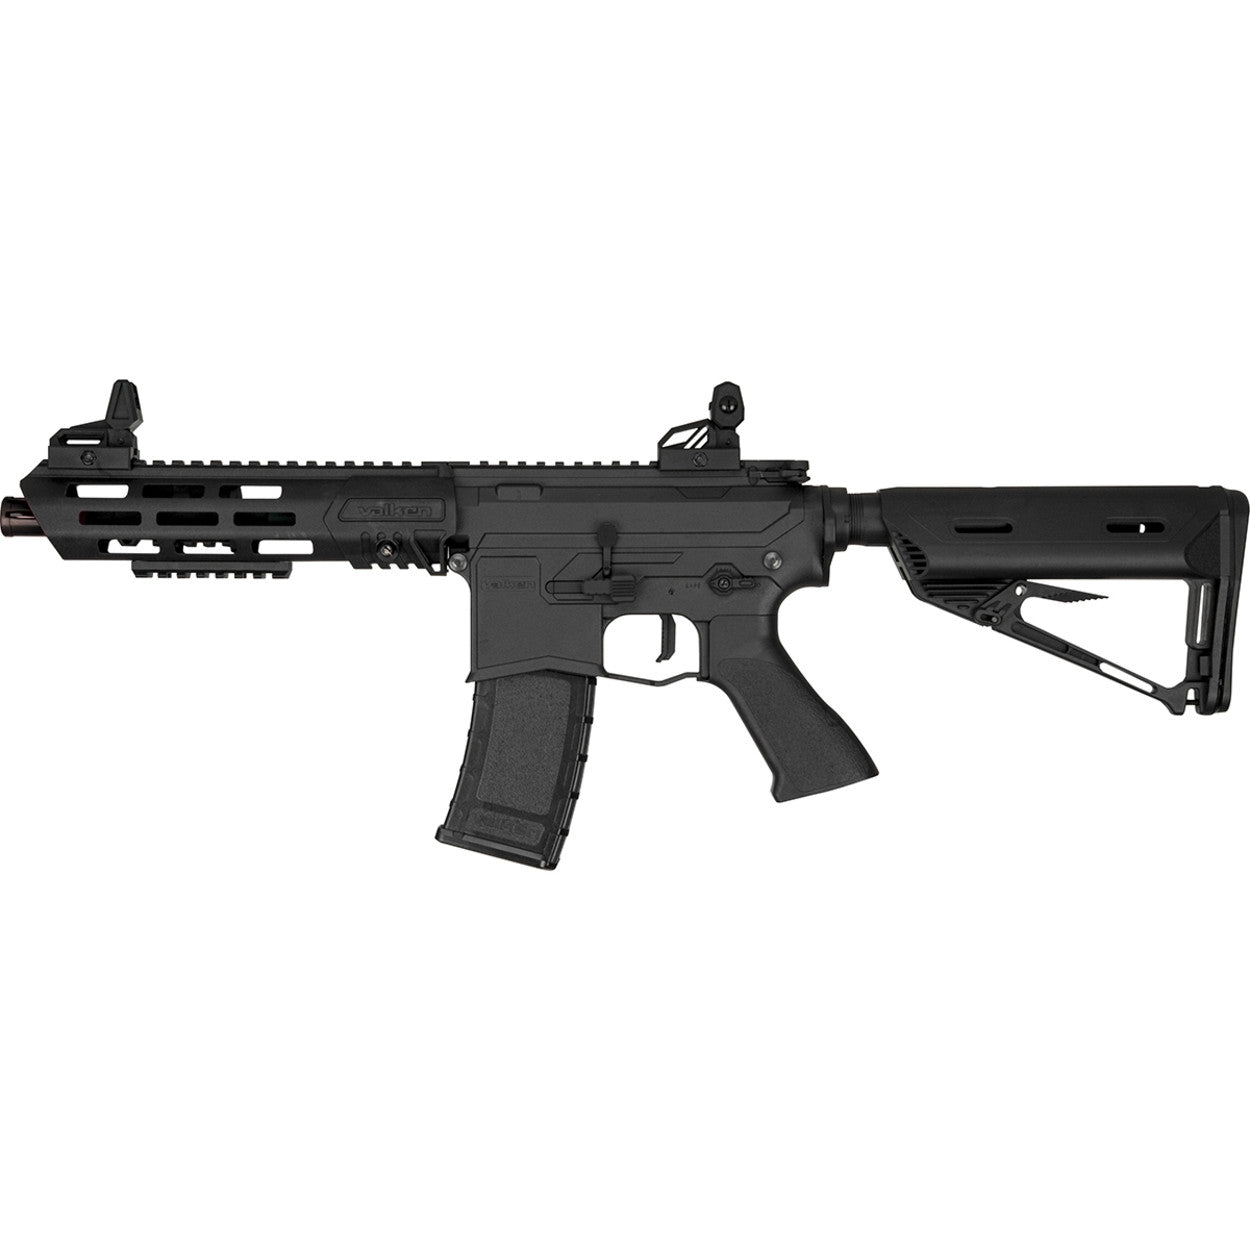 Valken AEG ASL Battle Machine - Kilo